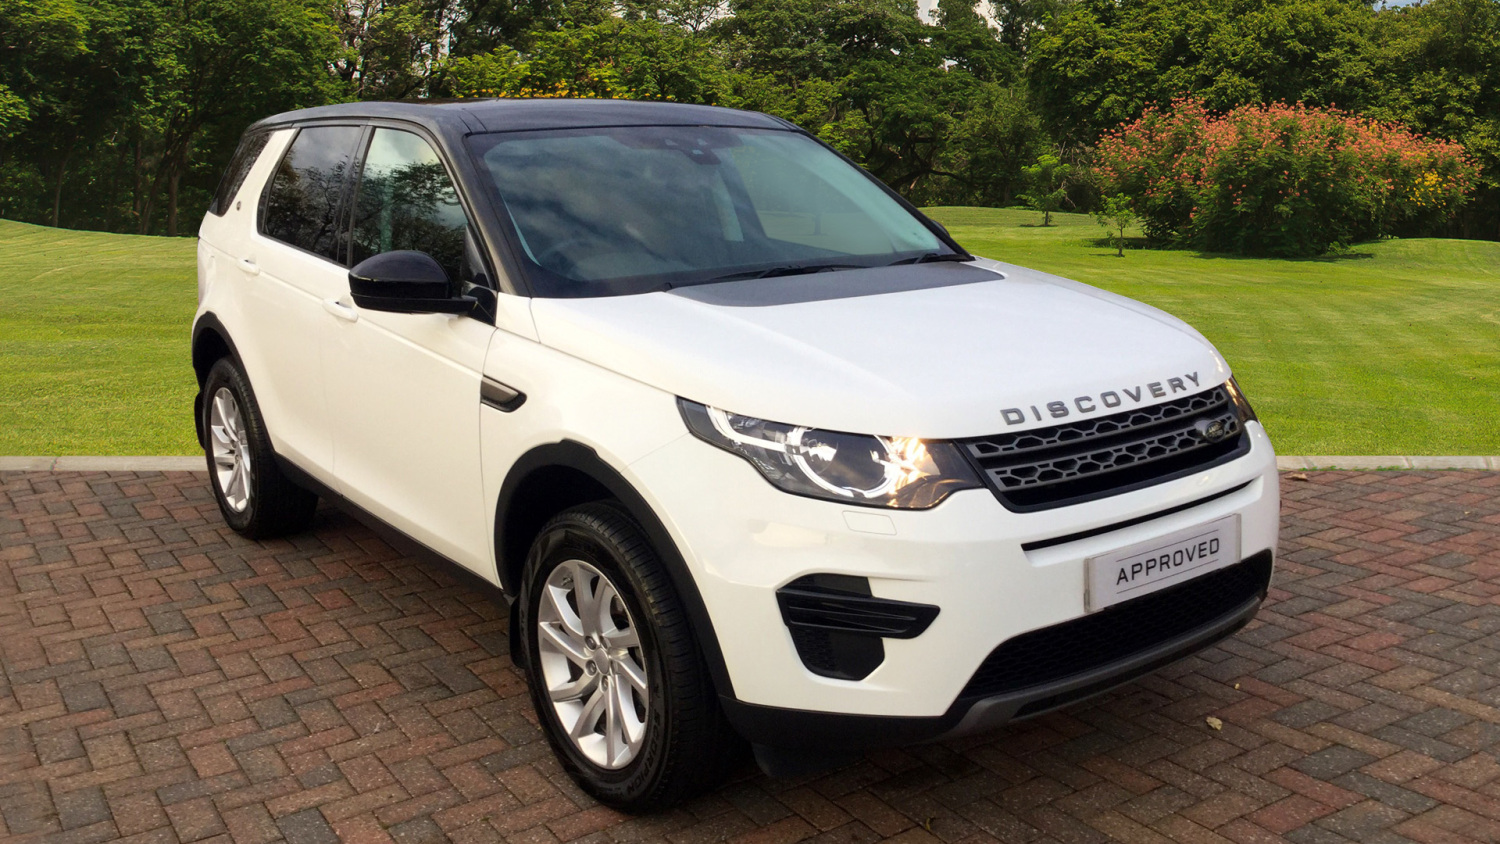 used land rover discovery sport 2 0 td4 180 se 5dr auto diesel station wagon for sale bristol. Black Bedroom Furniture Sets. Home Design Ideas